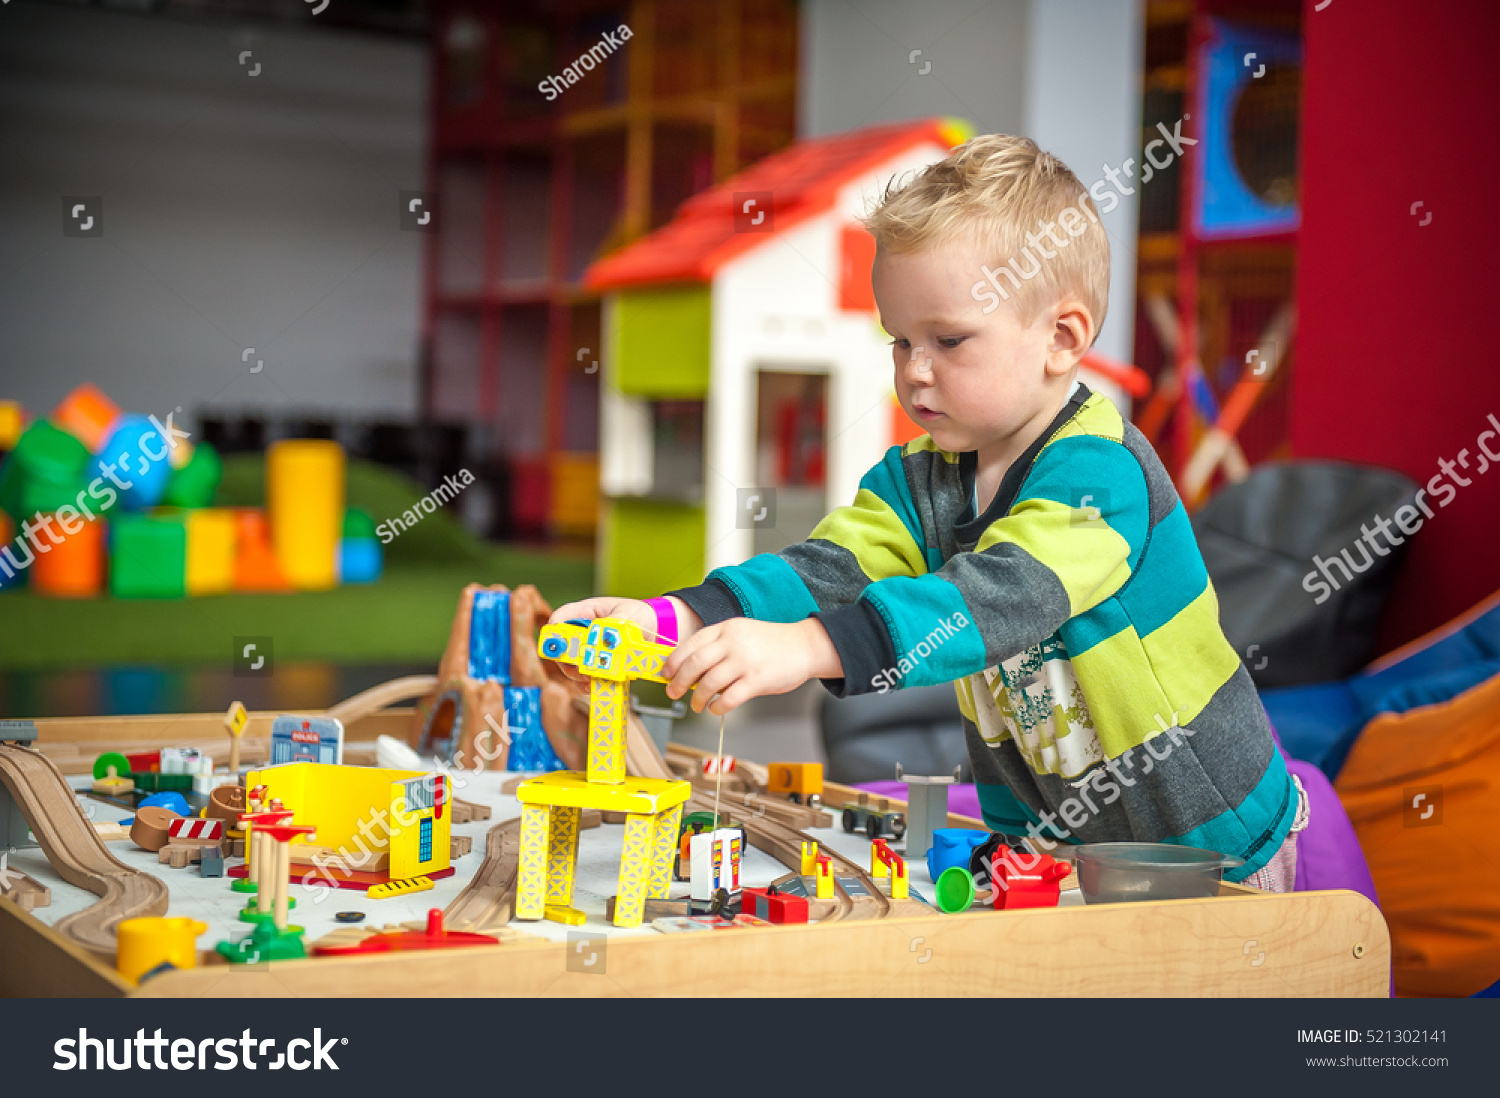 Toys For Preschool Boys : Children play wooden toy build stock photo